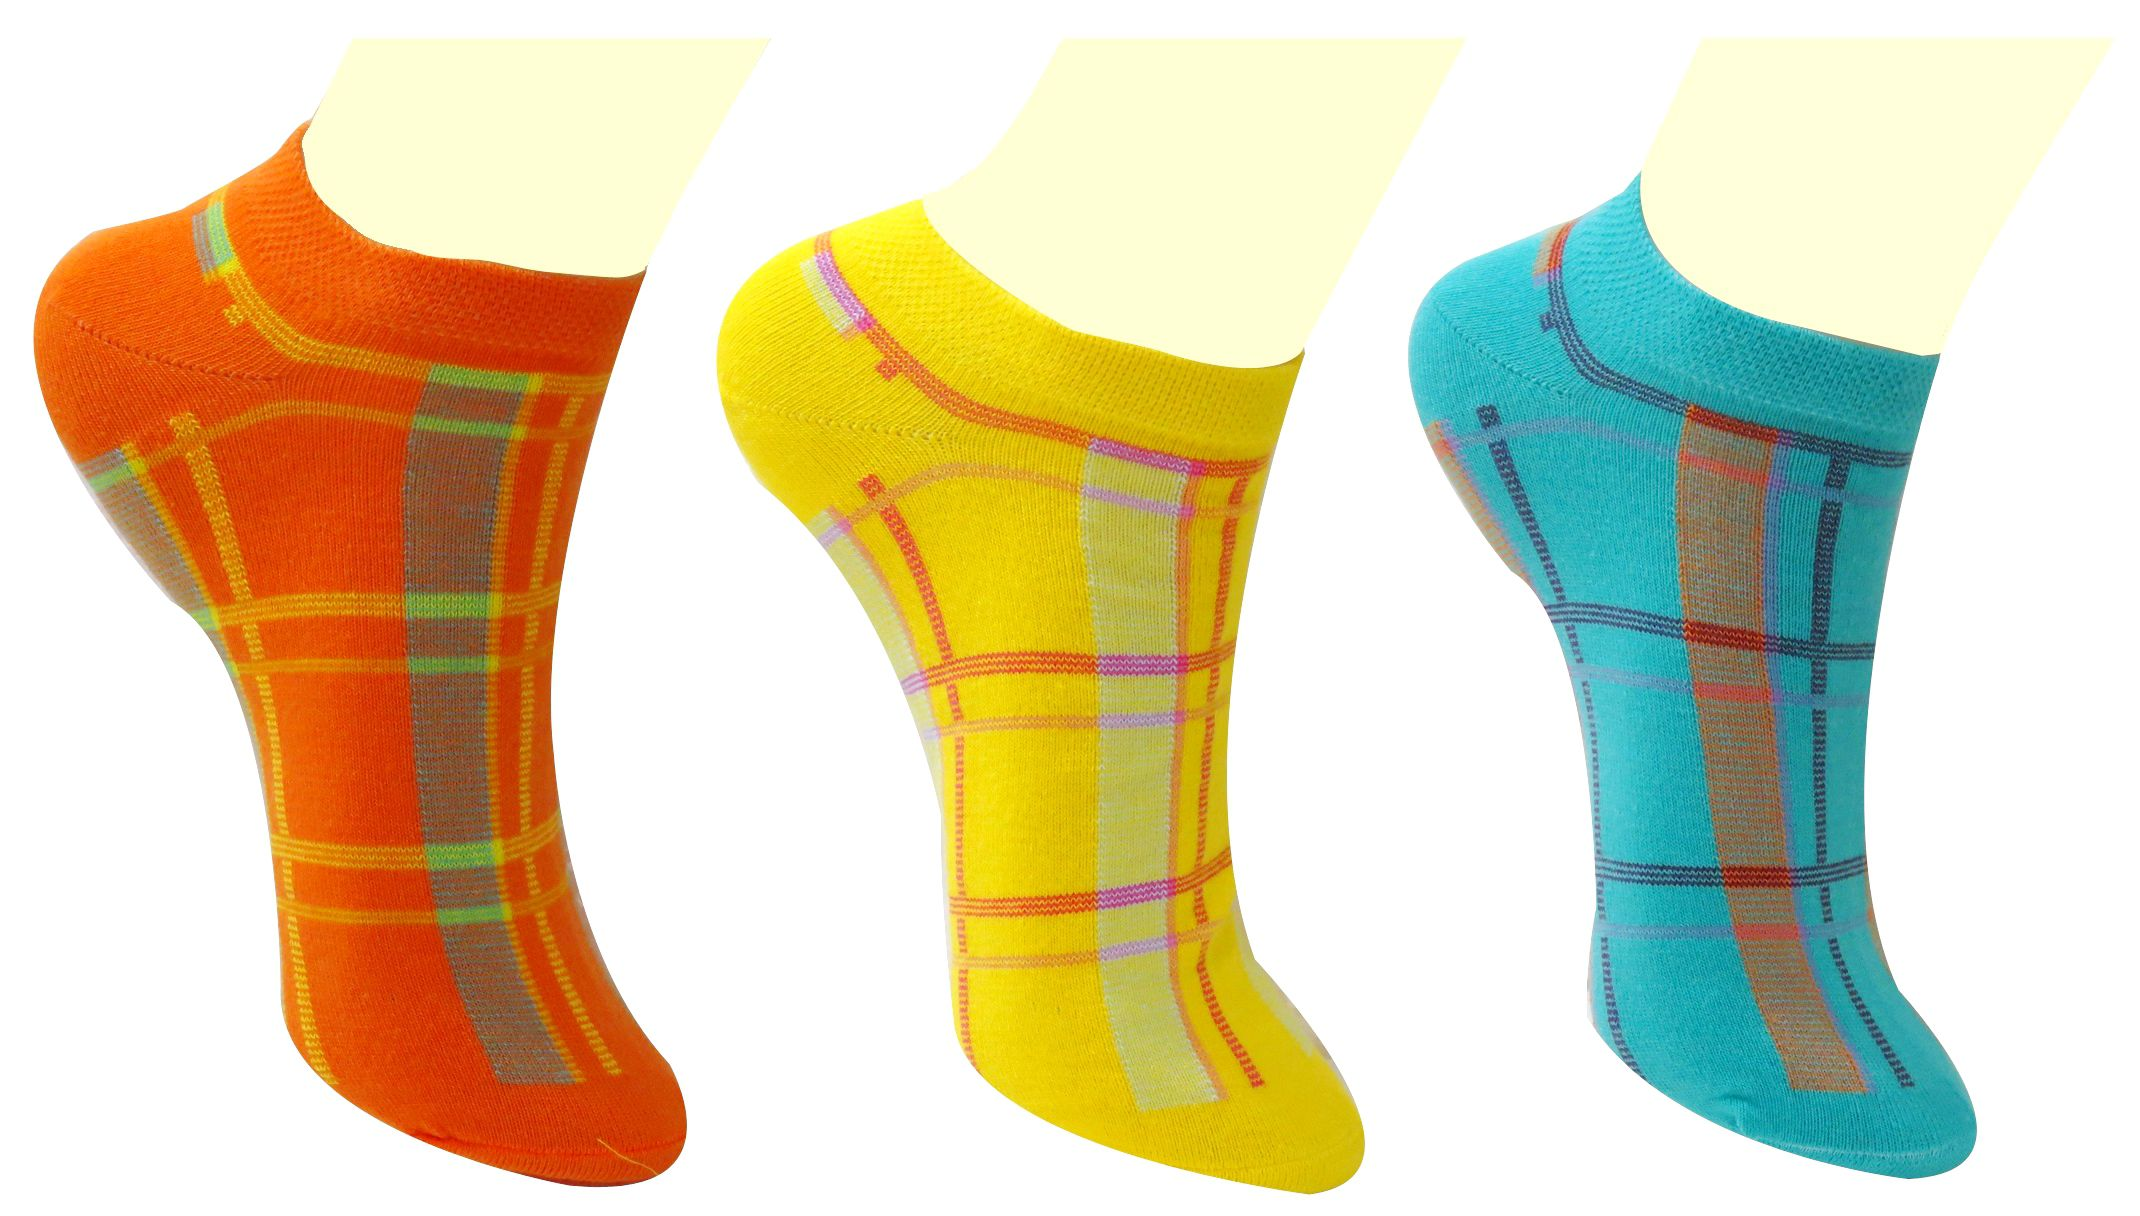 Neska Moda 3 Pair Women's Premium Checks Design Free Size Cotton Ankle Length Socks-Orange,Yellow,Blue